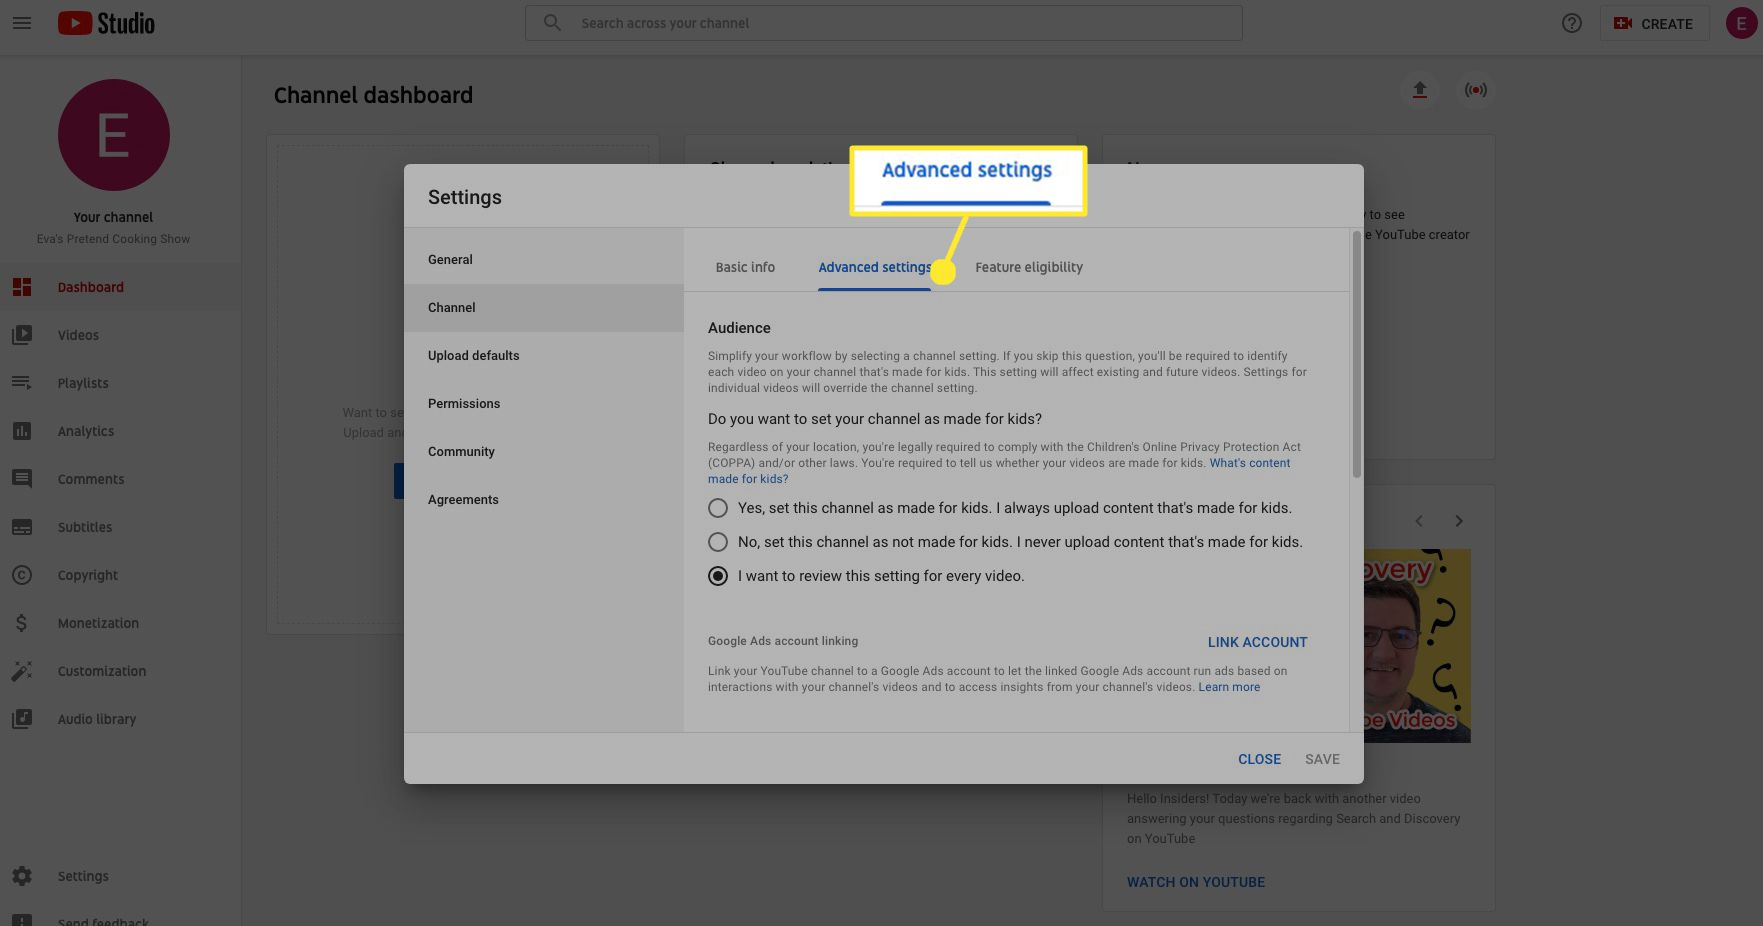 Select Advanced settings to choose whether or not you want to set your channel as OK for kids, or review videos on a case-by-case basis for their child-friendliness.